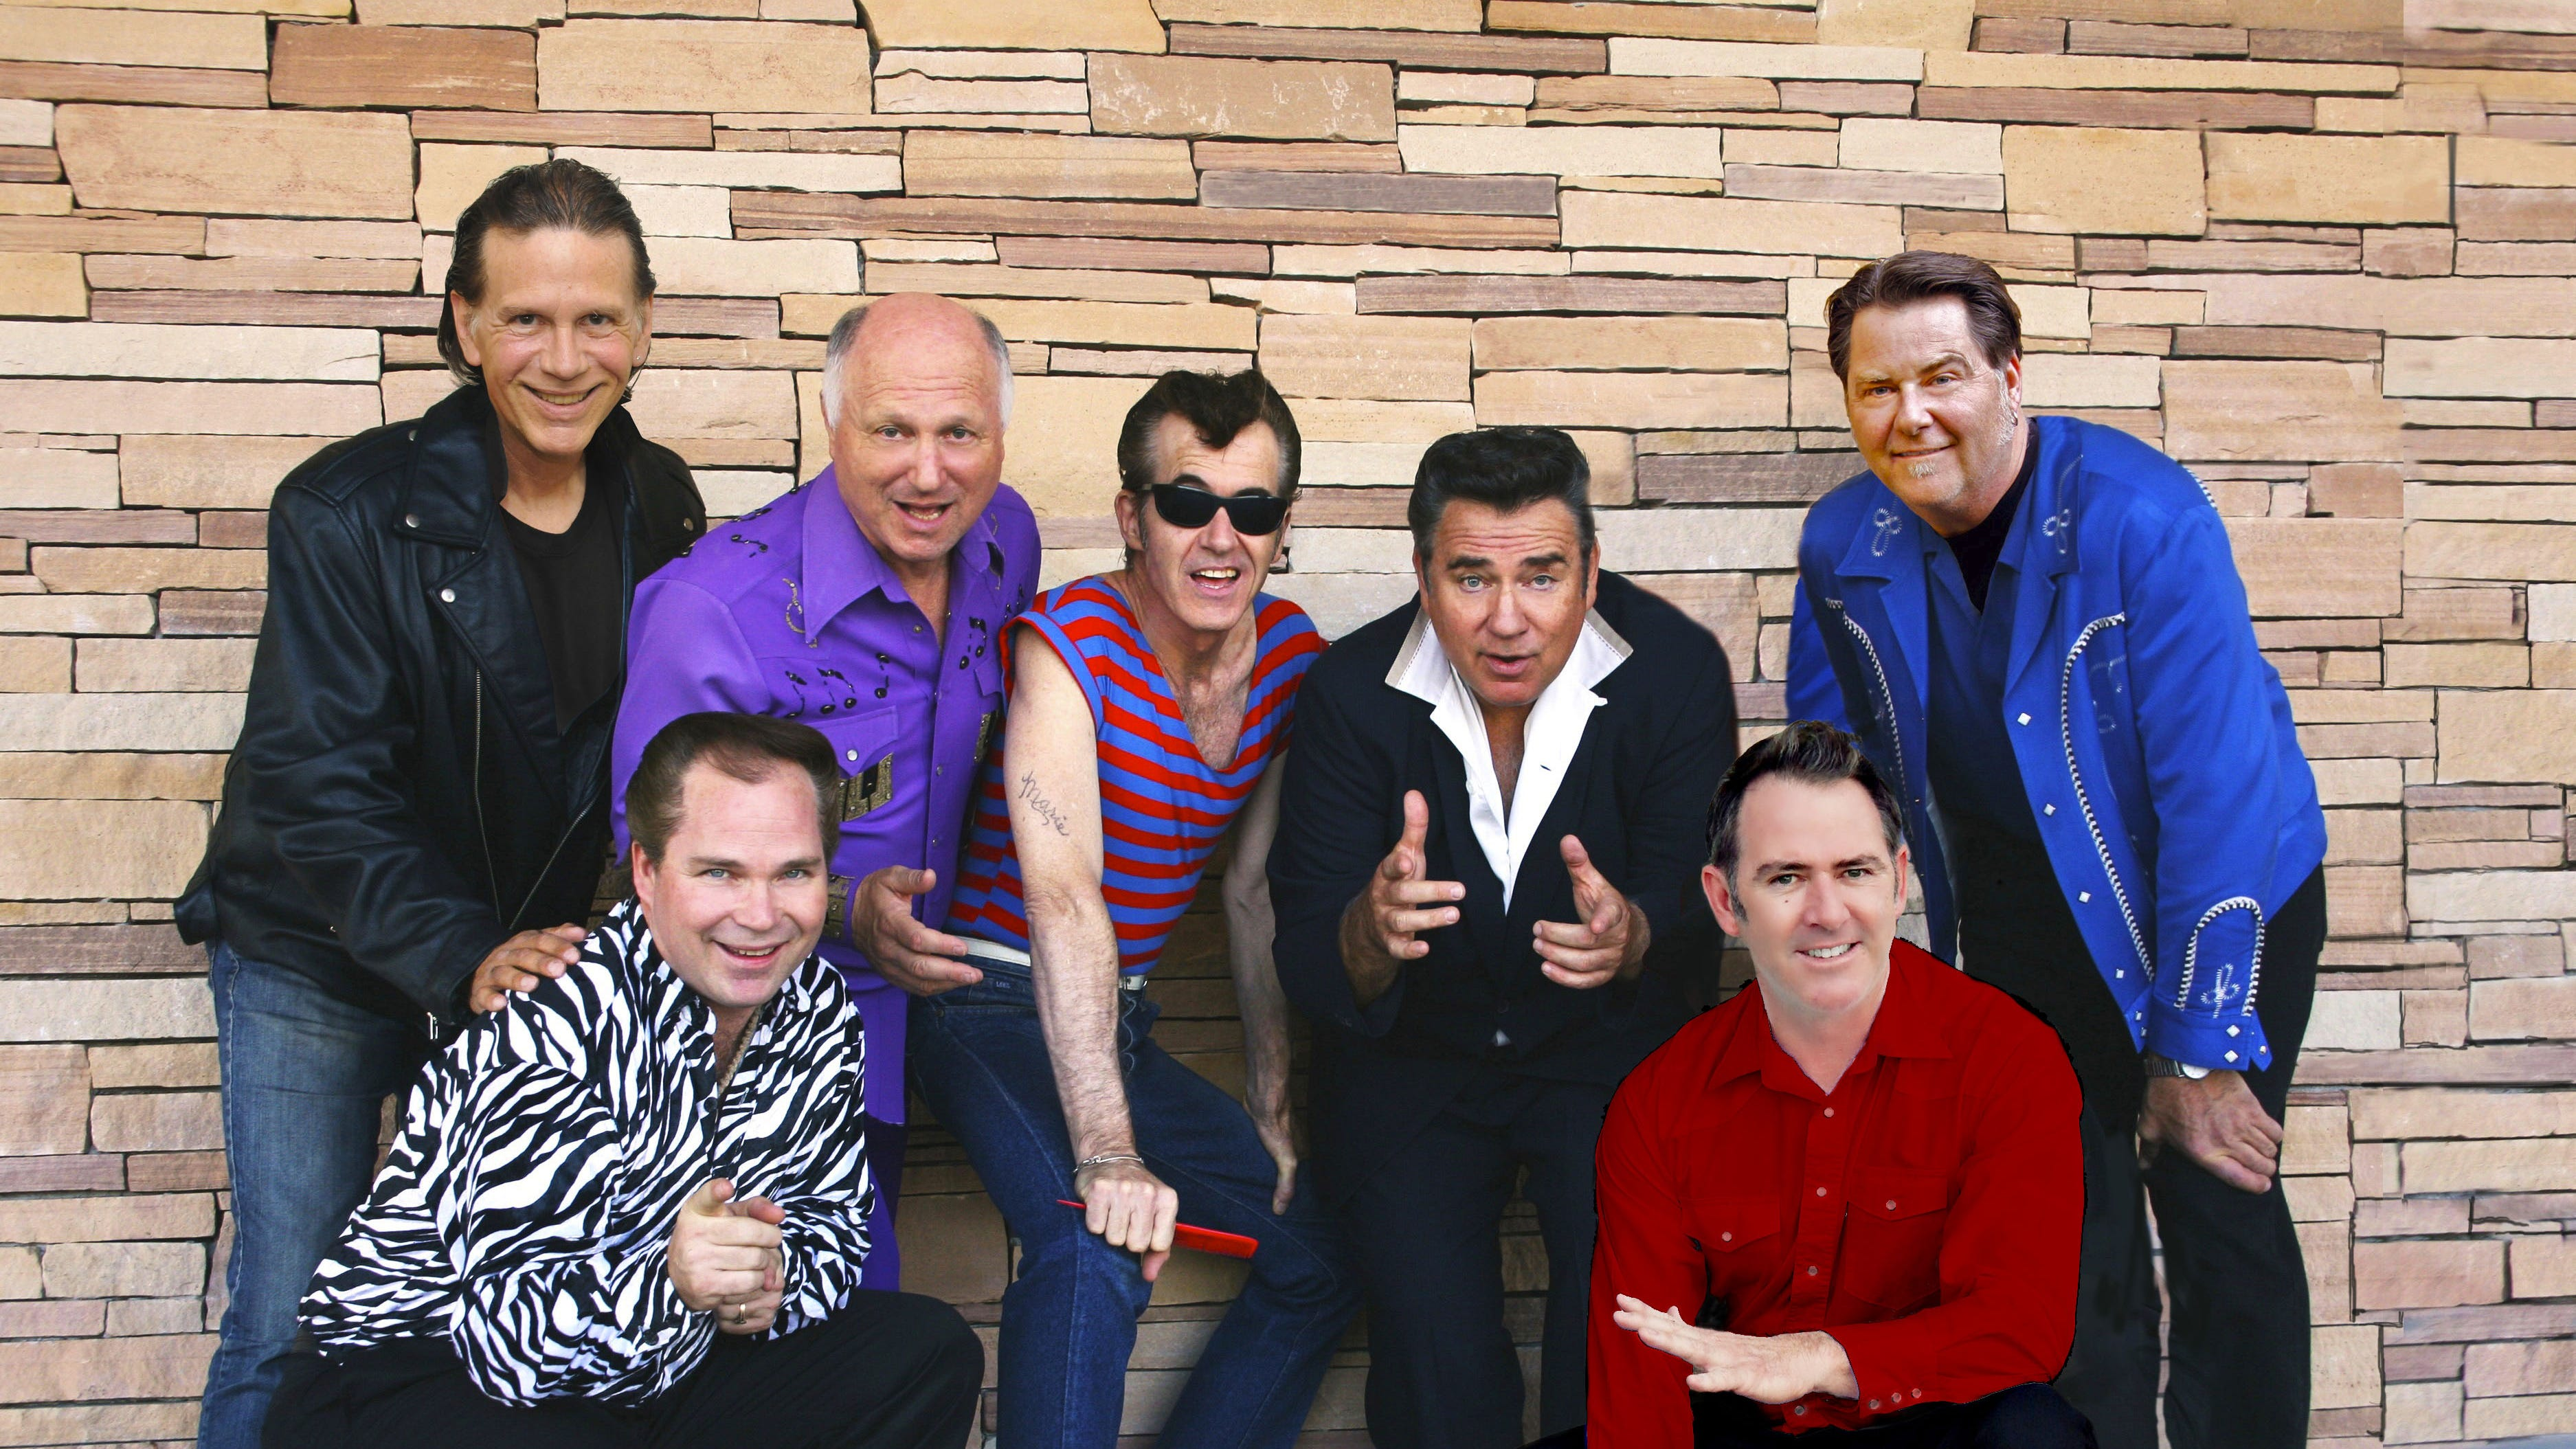 Sha Na Na, which specializes in faithful recreations of the rock 'n' roll hits of the late 1950s and early 1960s, will play the Newton Theatre on Friday, October 19.  The original line-up of the band formed at Columbia University almost 50 years ago and gained early popularity with its performance at Woodstock.